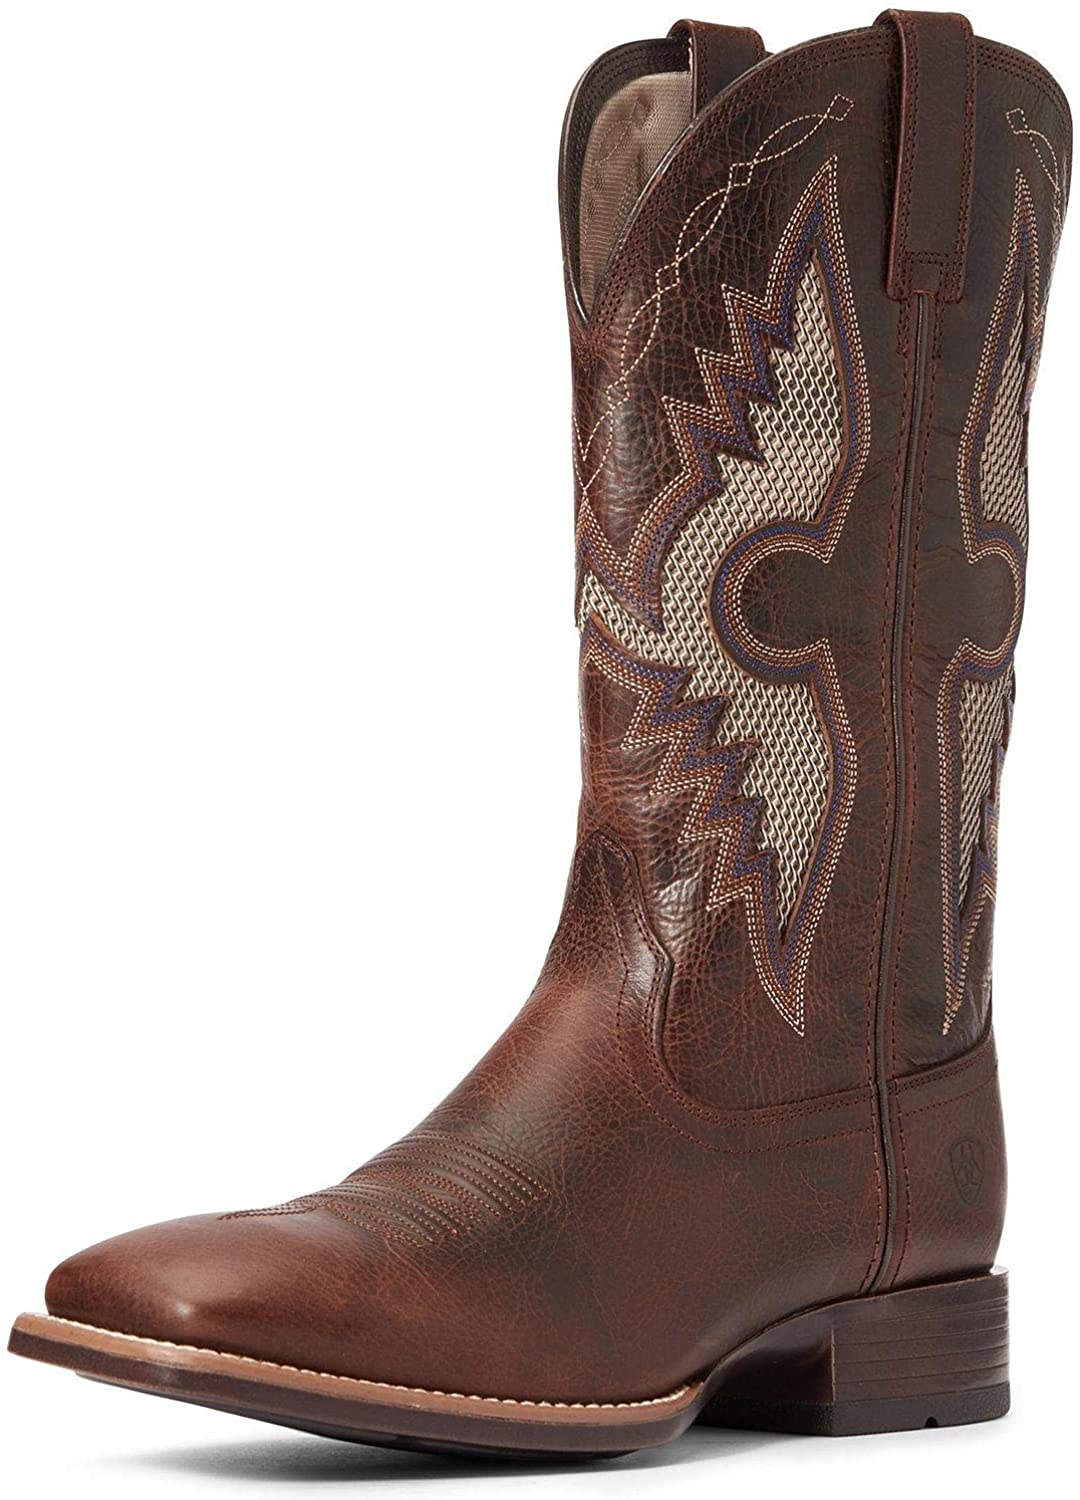 ARIAT Men's Solado Venttek Western Boot Wide Square Toe